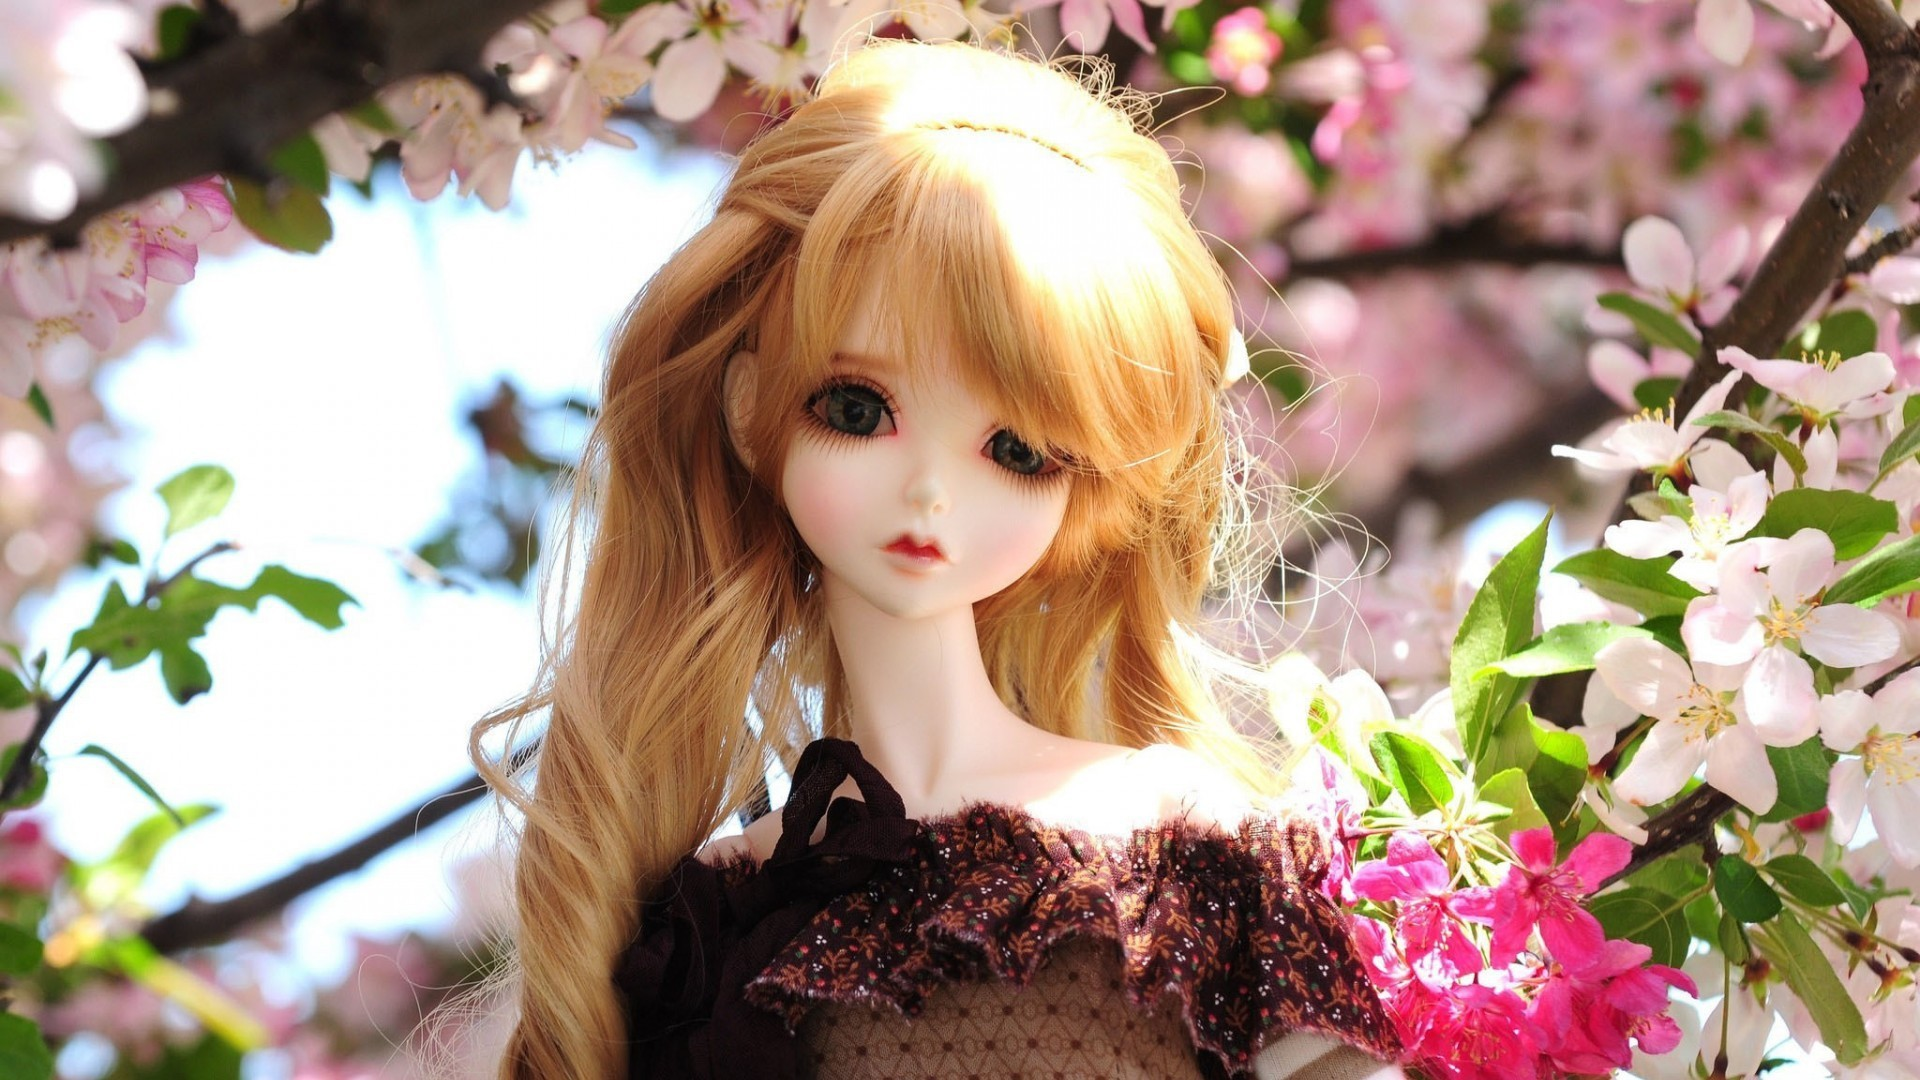 Wallpapers Of Dolls 76 Images